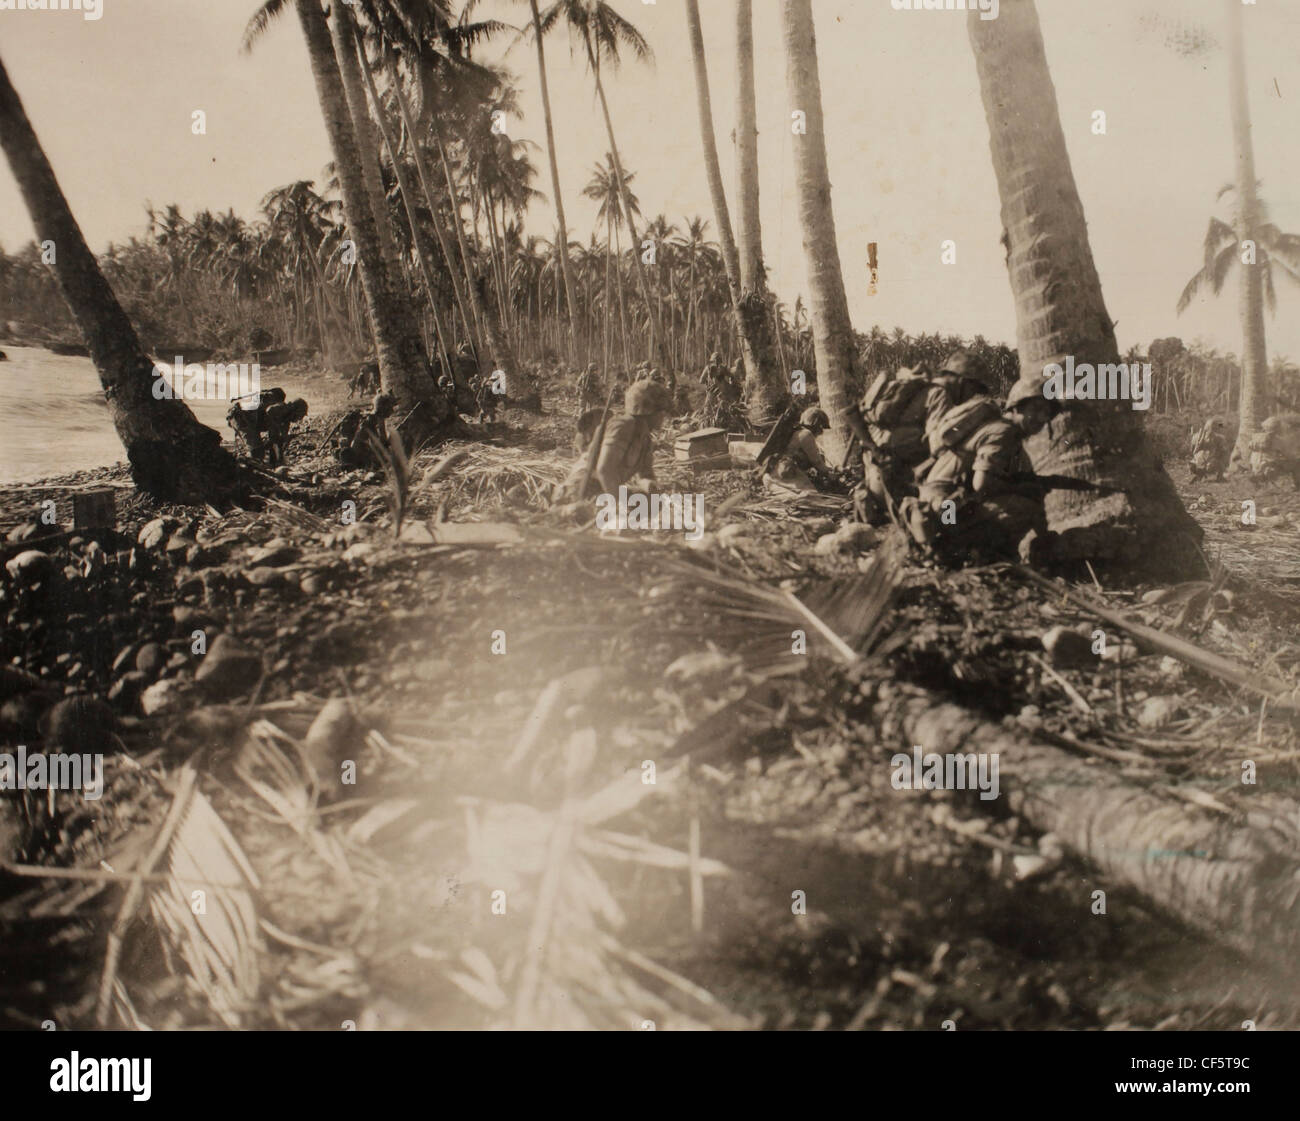 US Marine Corps WWII Pacific Campaign: Troops of 3rd wave 'A' Co 5th Marines consolidate position on beach. - Stock Image